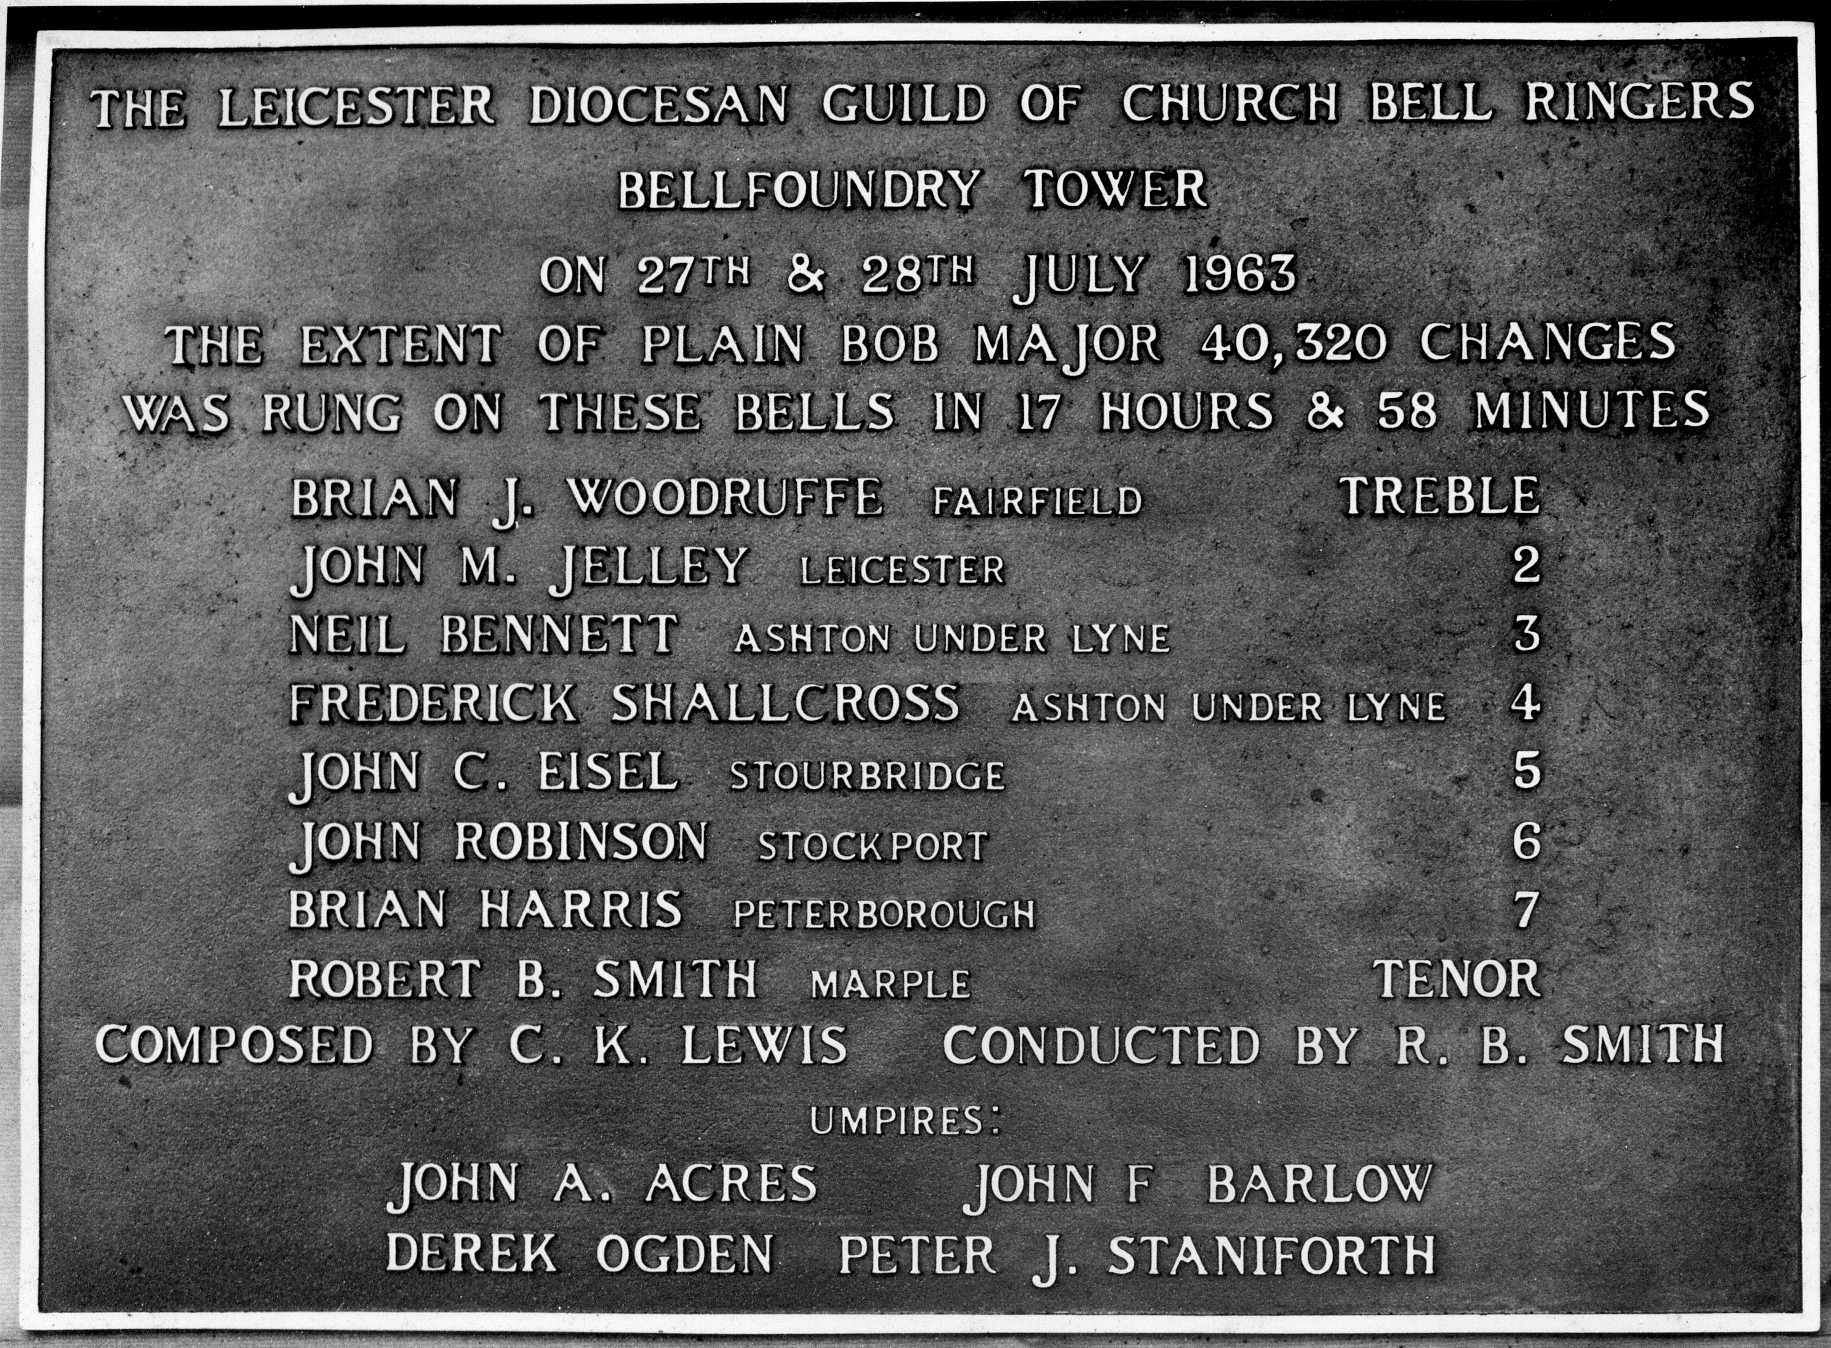 Cast plaque recording the longest ever peal which was rung on our bell foundry bells - a unique record in the history of change ringing.